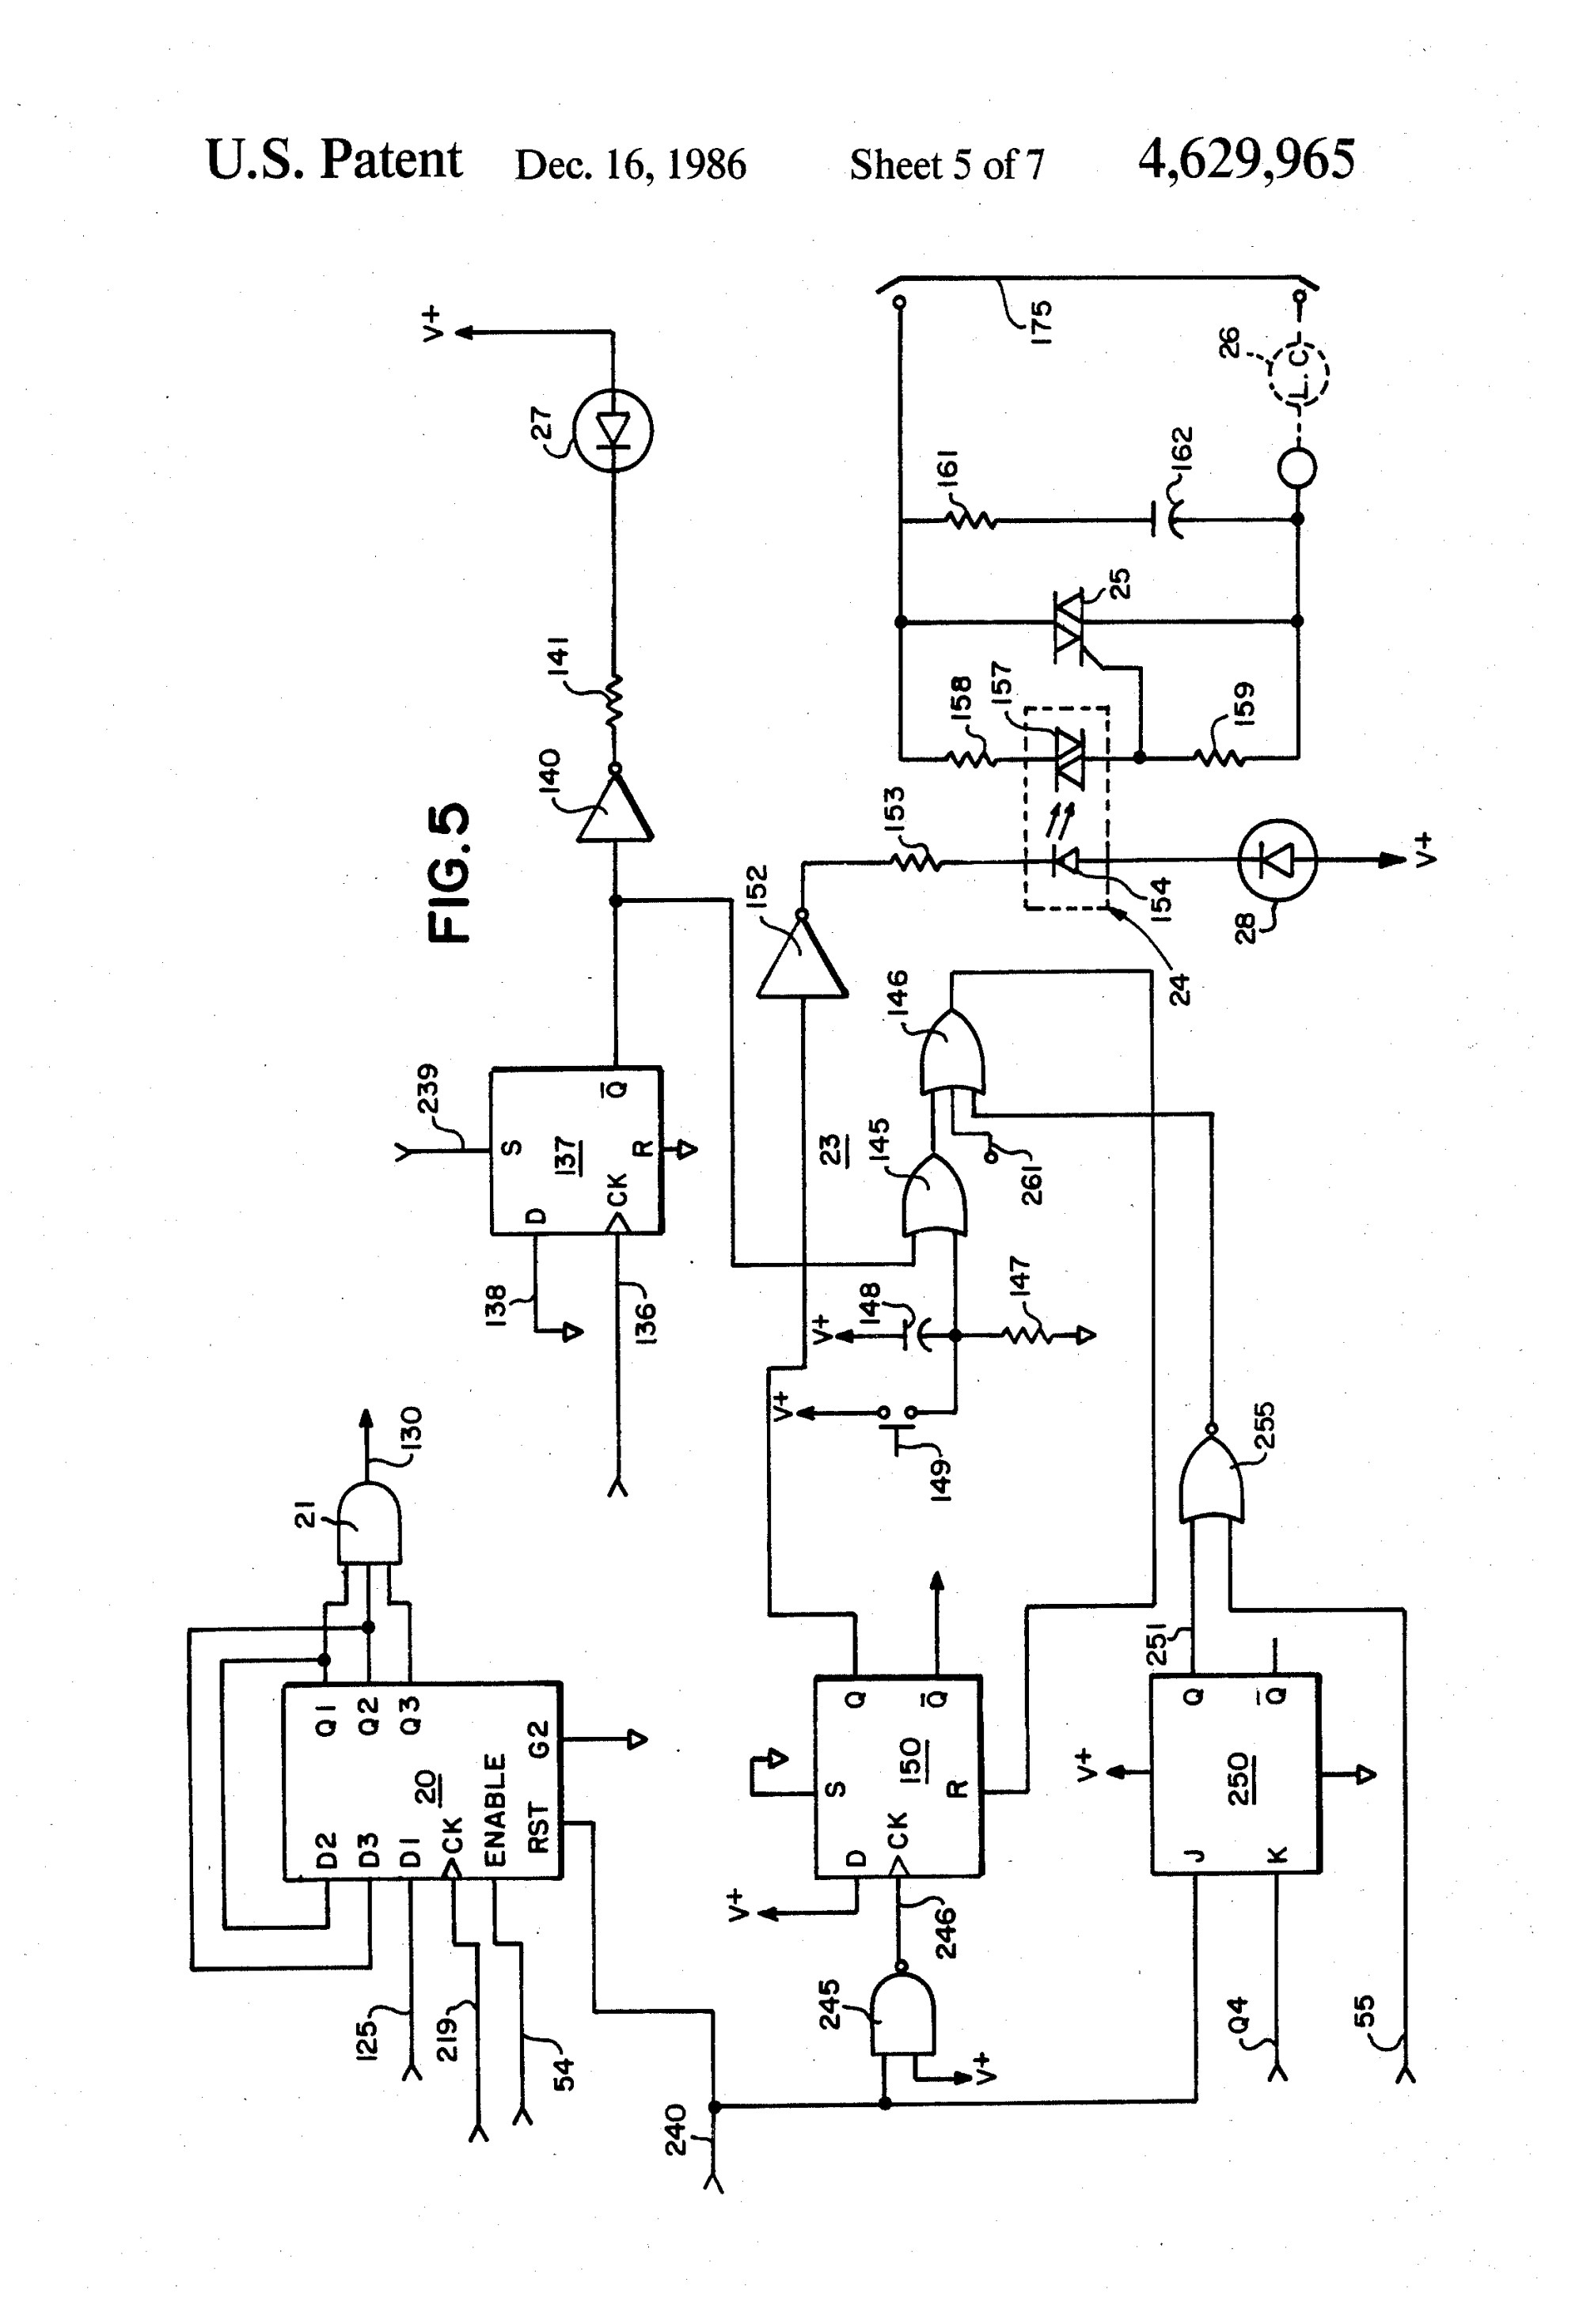 hight resolution of cxc 7100 battery charger wiring diagram best wiring library century battery charger wiring diagram